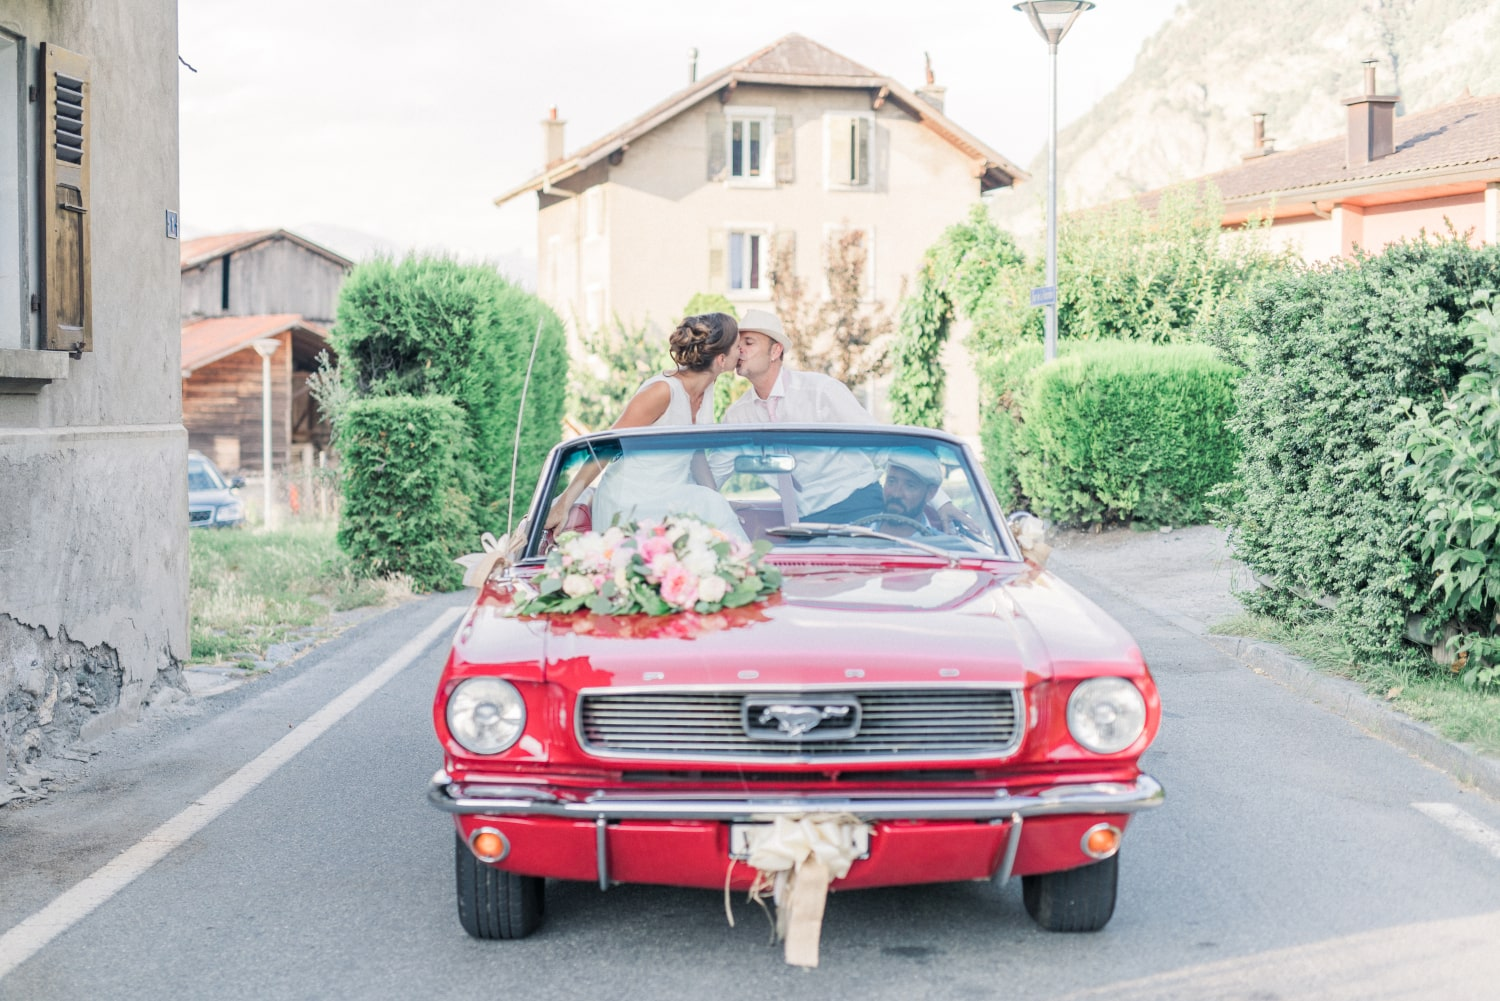 The newlyweds in a red Ford Mustang